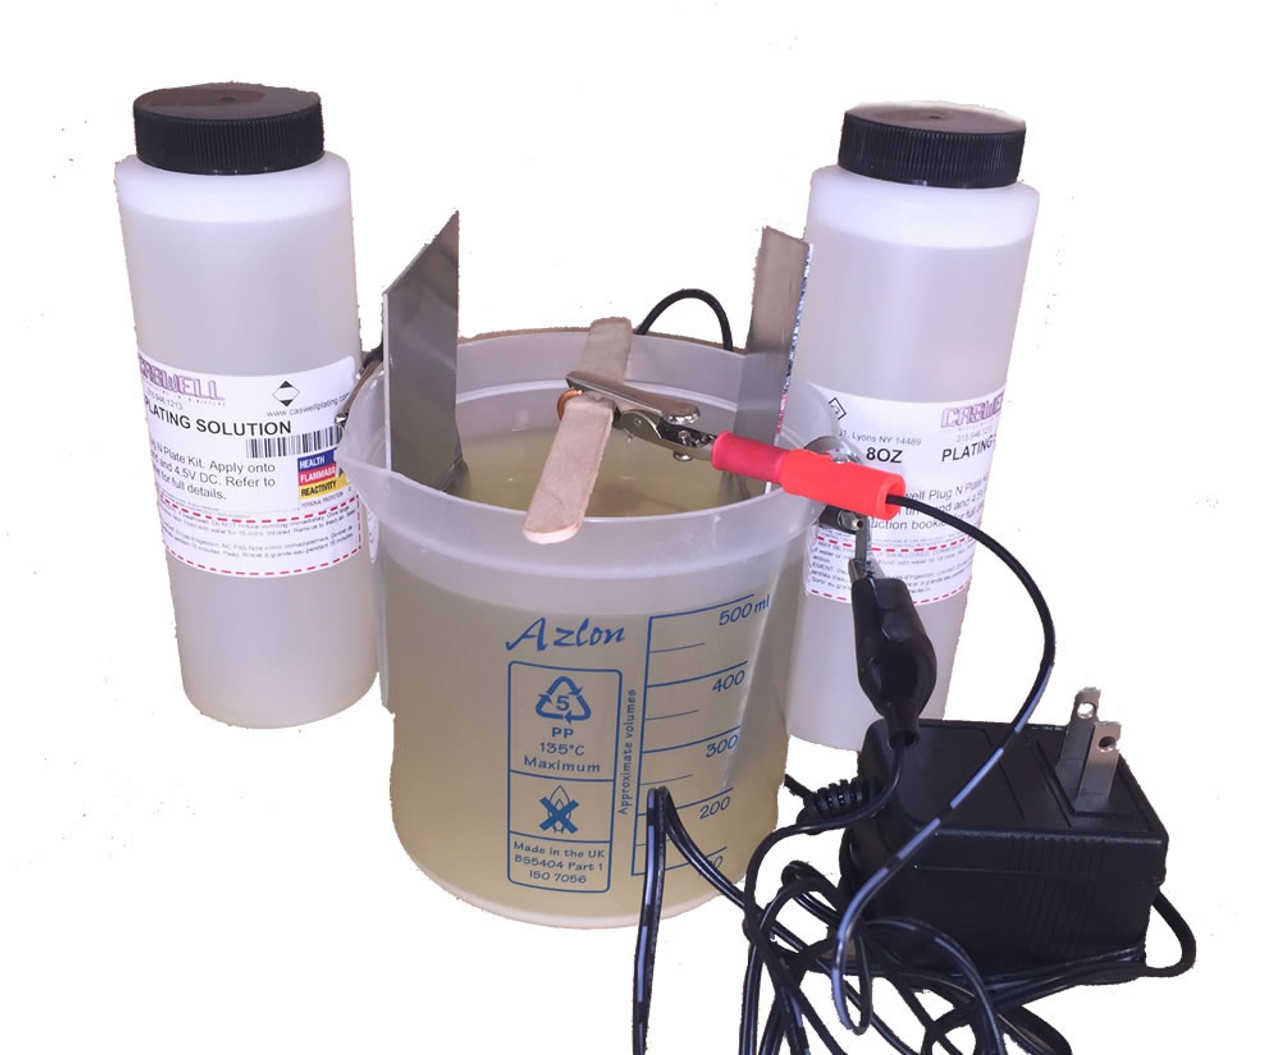 Caswell Science Plating Kit - Silver Plating